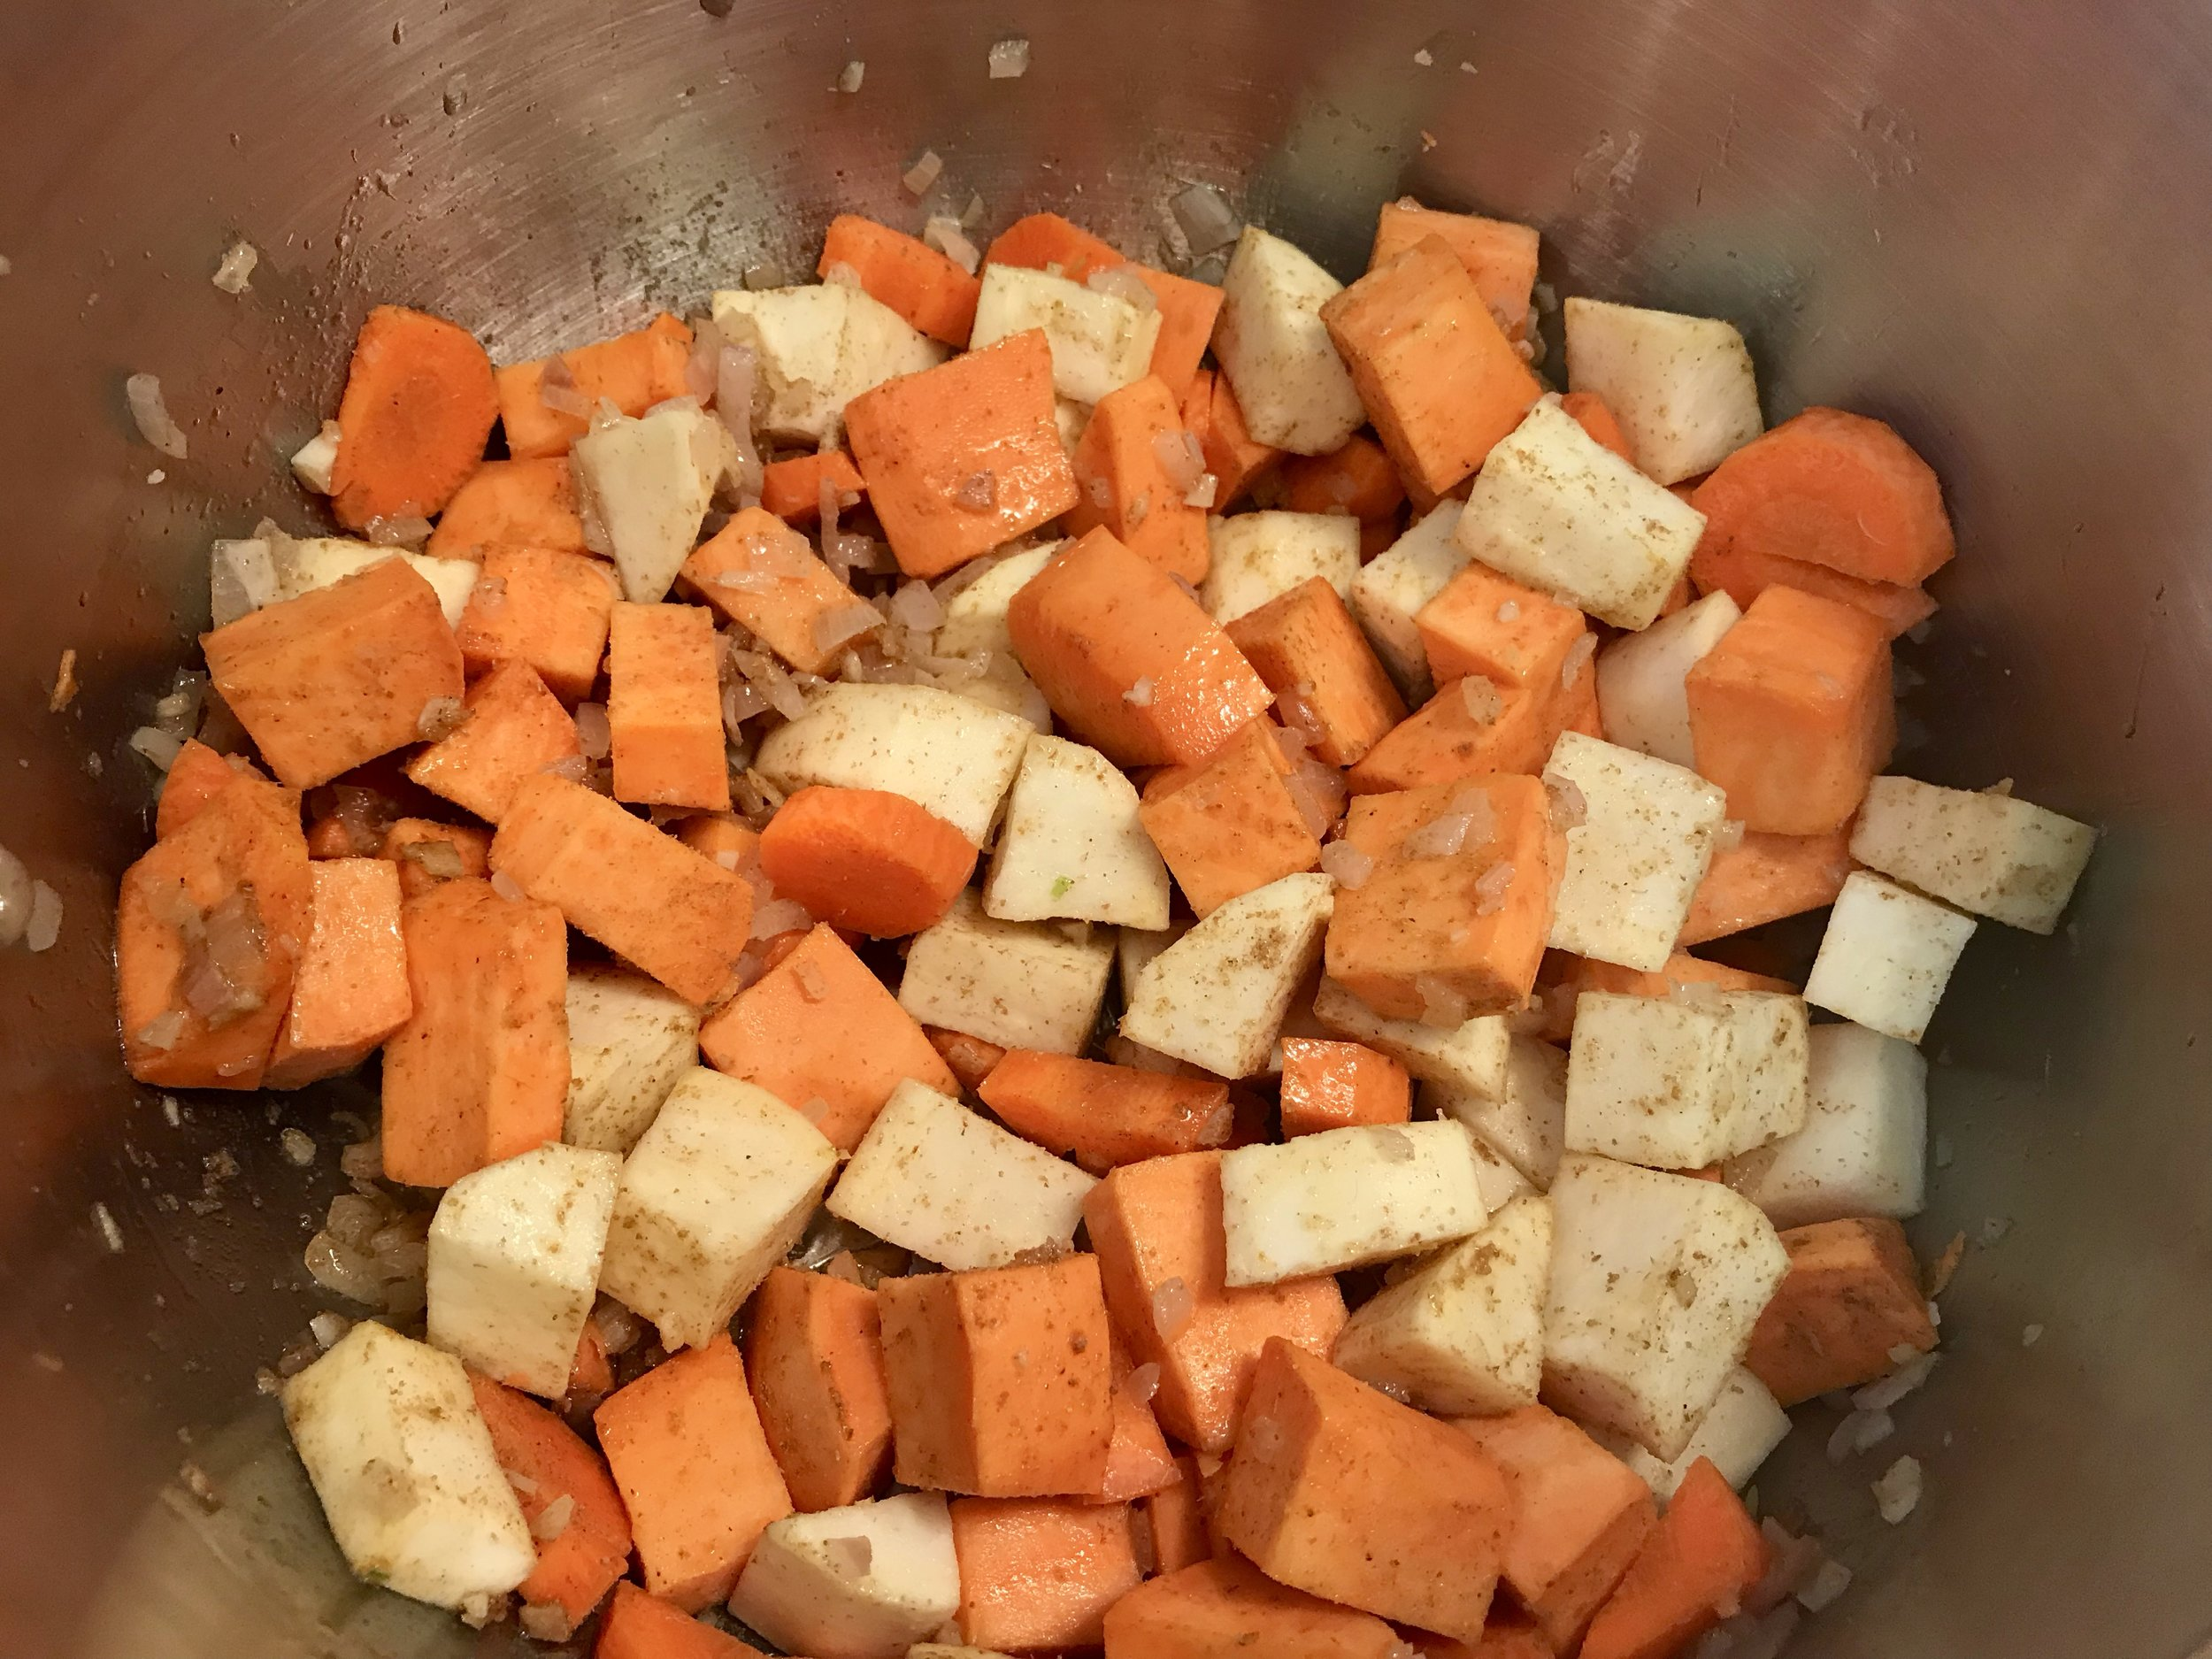 Add diced sweet potato( I used a combination of light and orange sweet potatoes) and spices and stir to combine. I also added a carrot here.